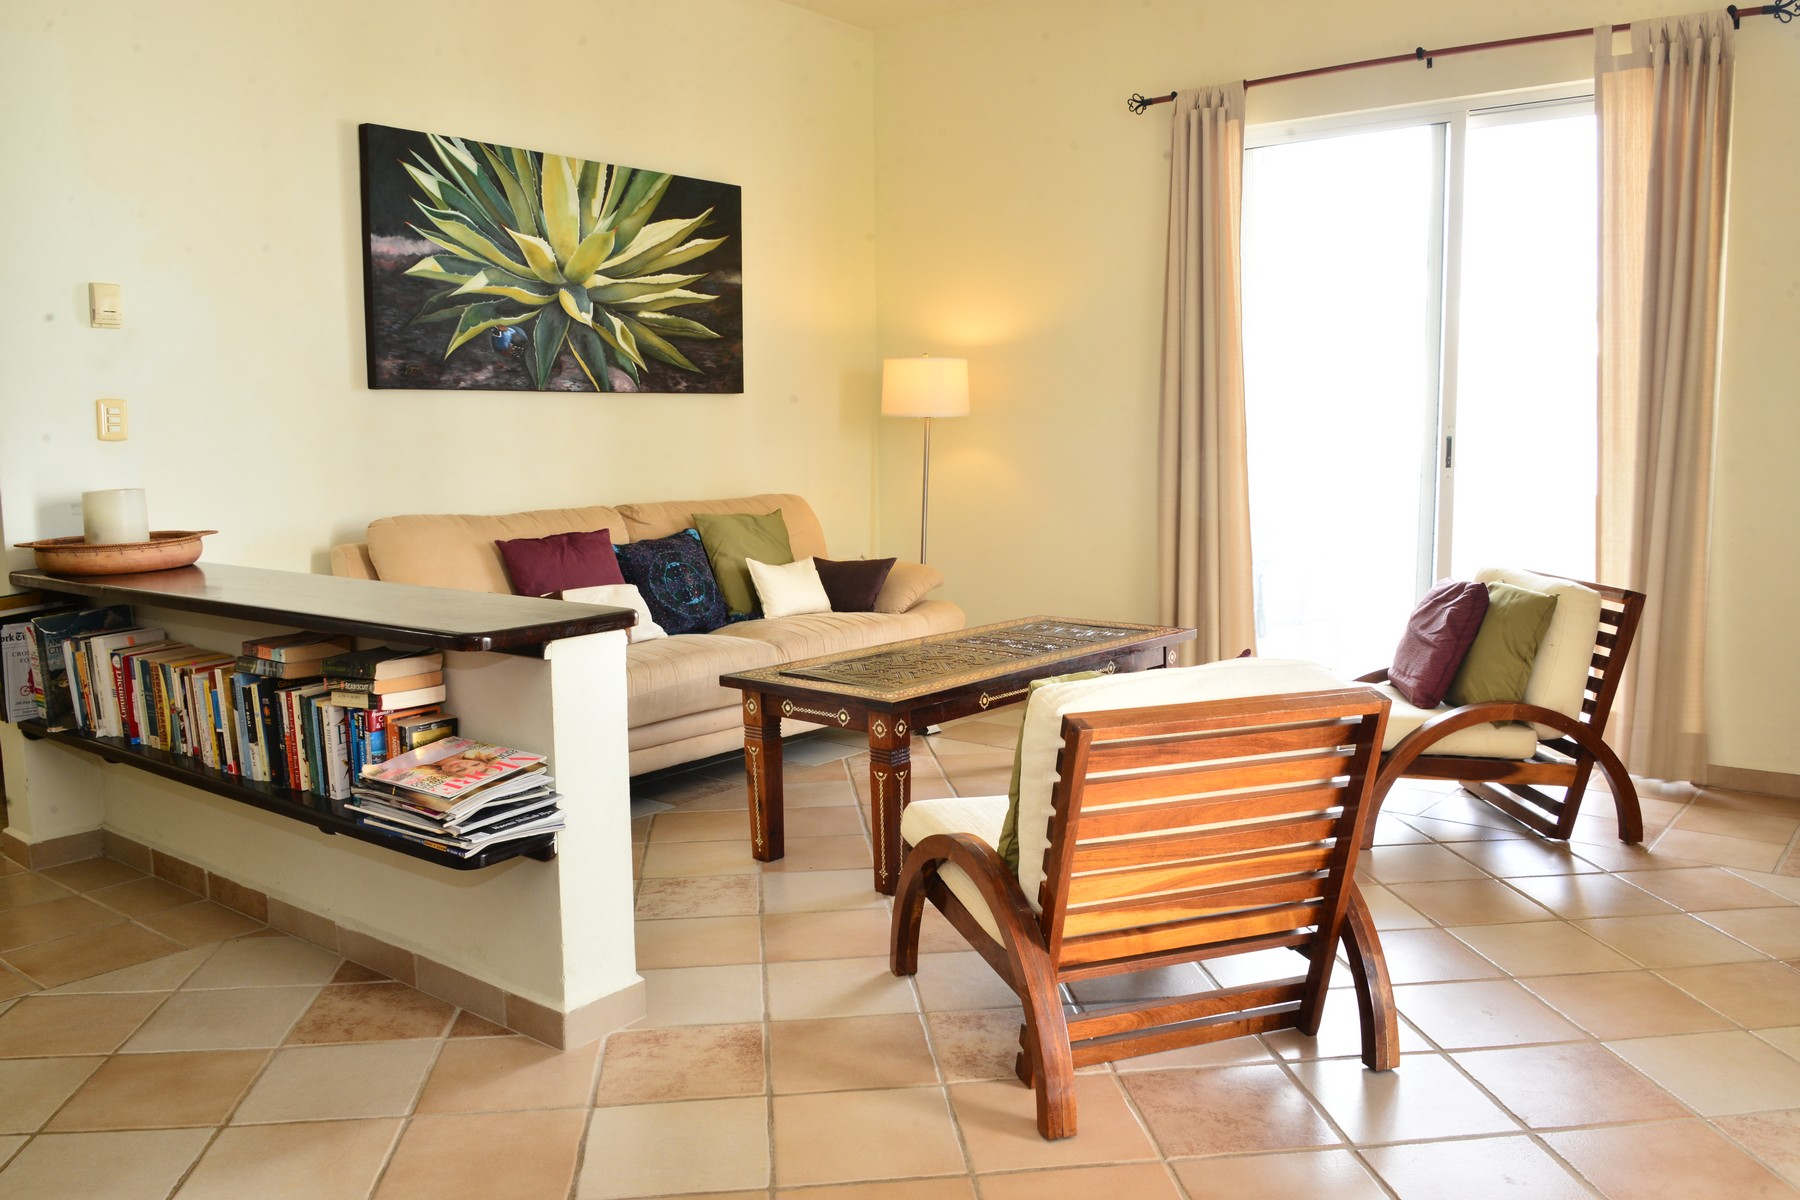 Condominium for Sale at PIEDRA VIVA 3 BEDROOM PENTHOUSE Playa Del Carmen, Quintana Roo 77710 Mexico